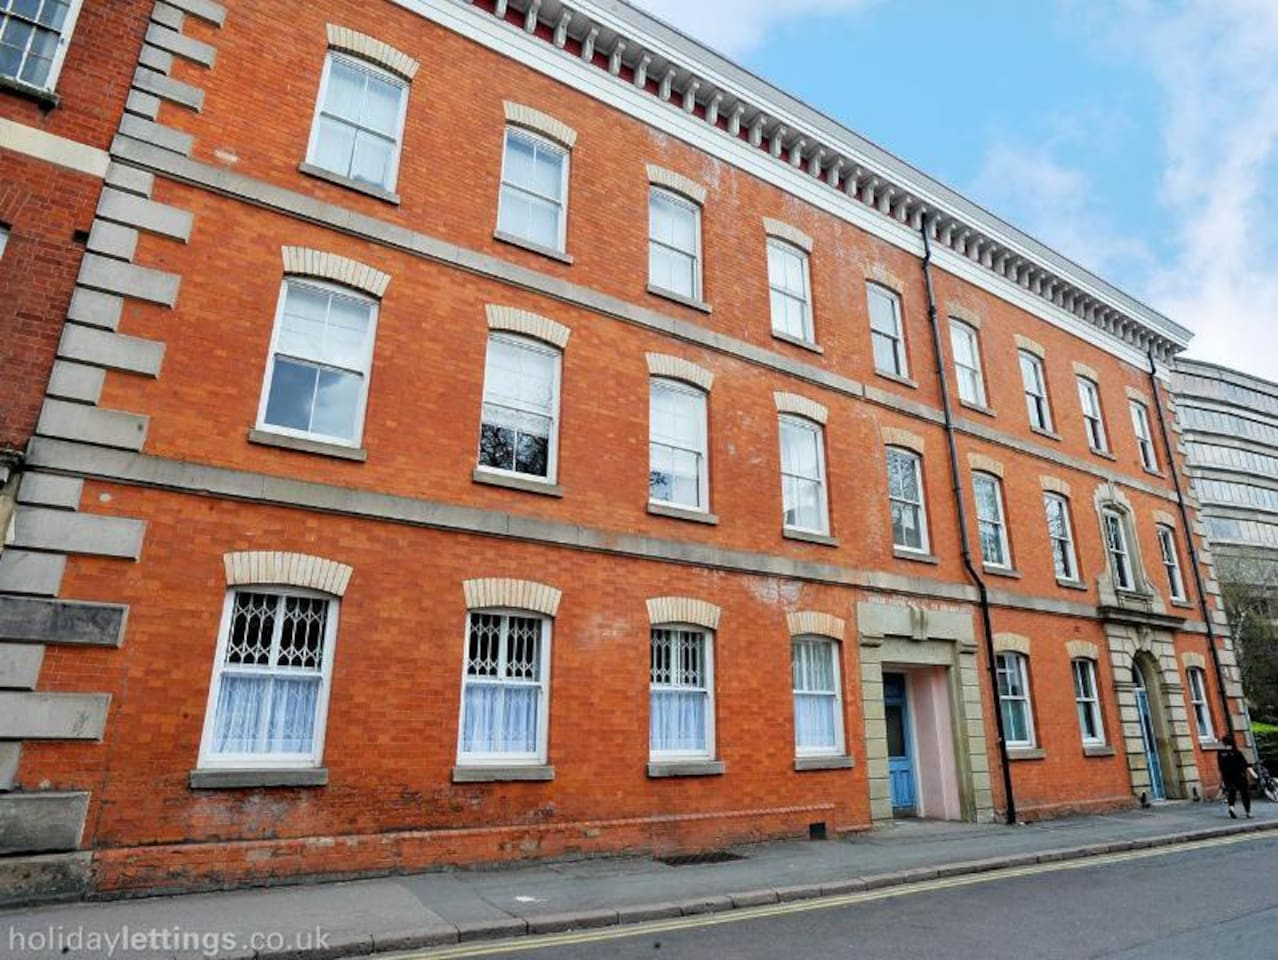 The front entrance to the Grade II listed Cotton Mill in the heart of historic Leicester.